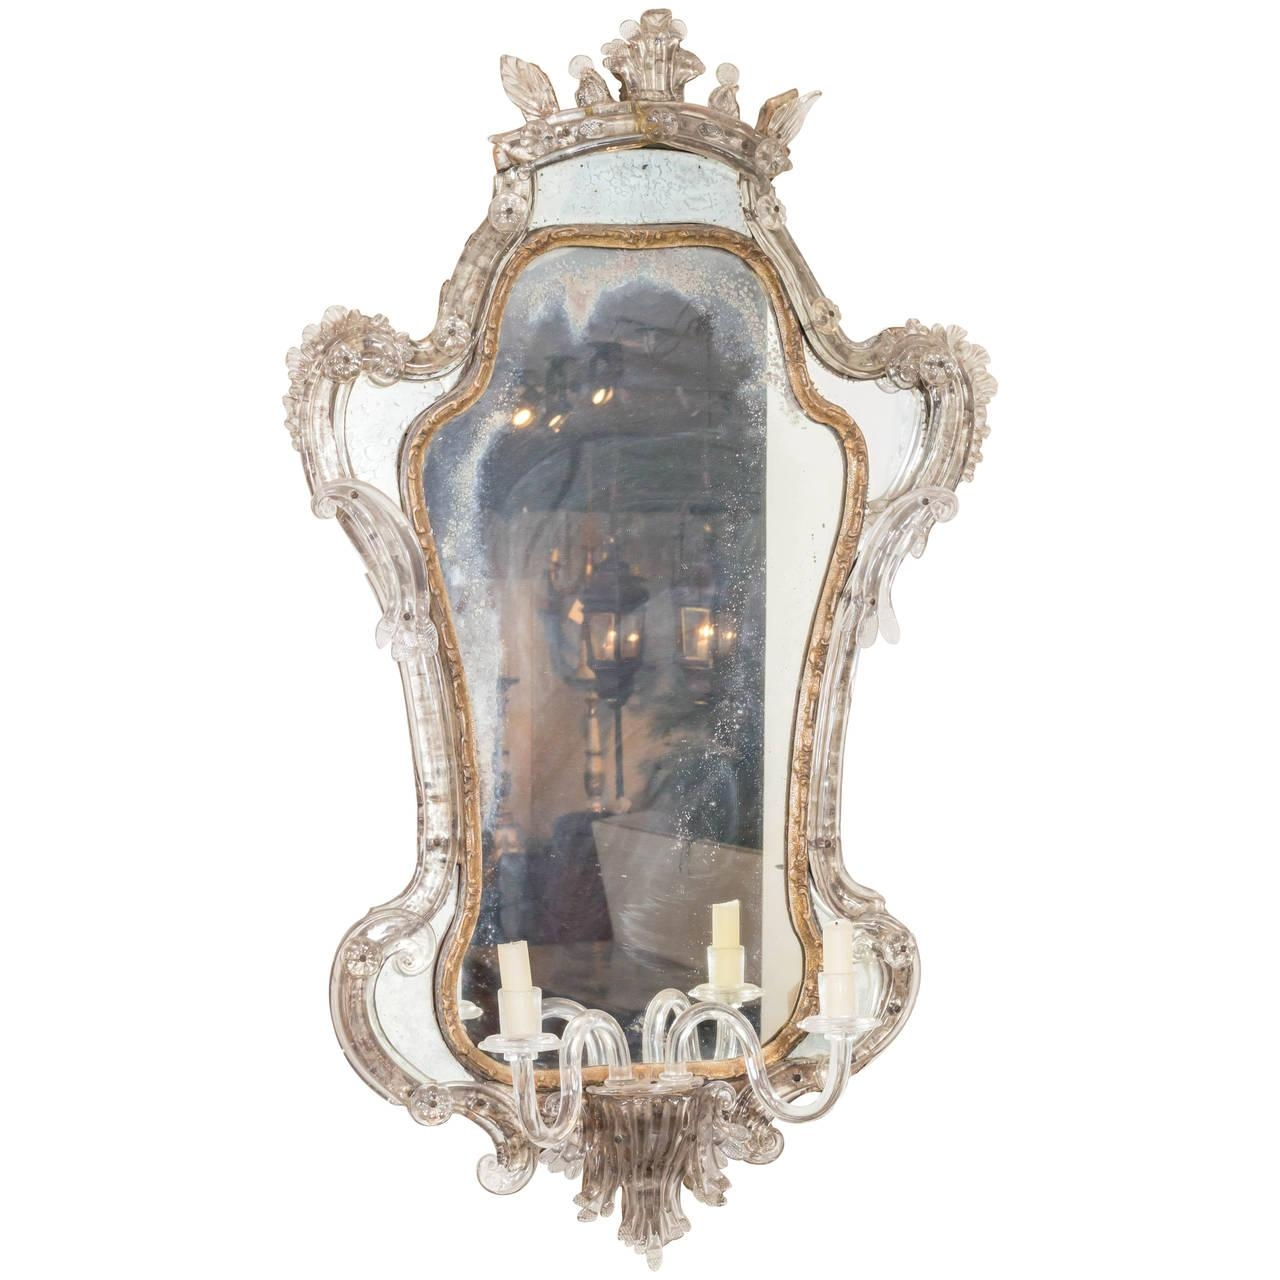 Antique Venetian Glass Mirror With Blown Glass Sconce, Italy Circa In Venetian Mirrors Antique (Image 5 of 20)